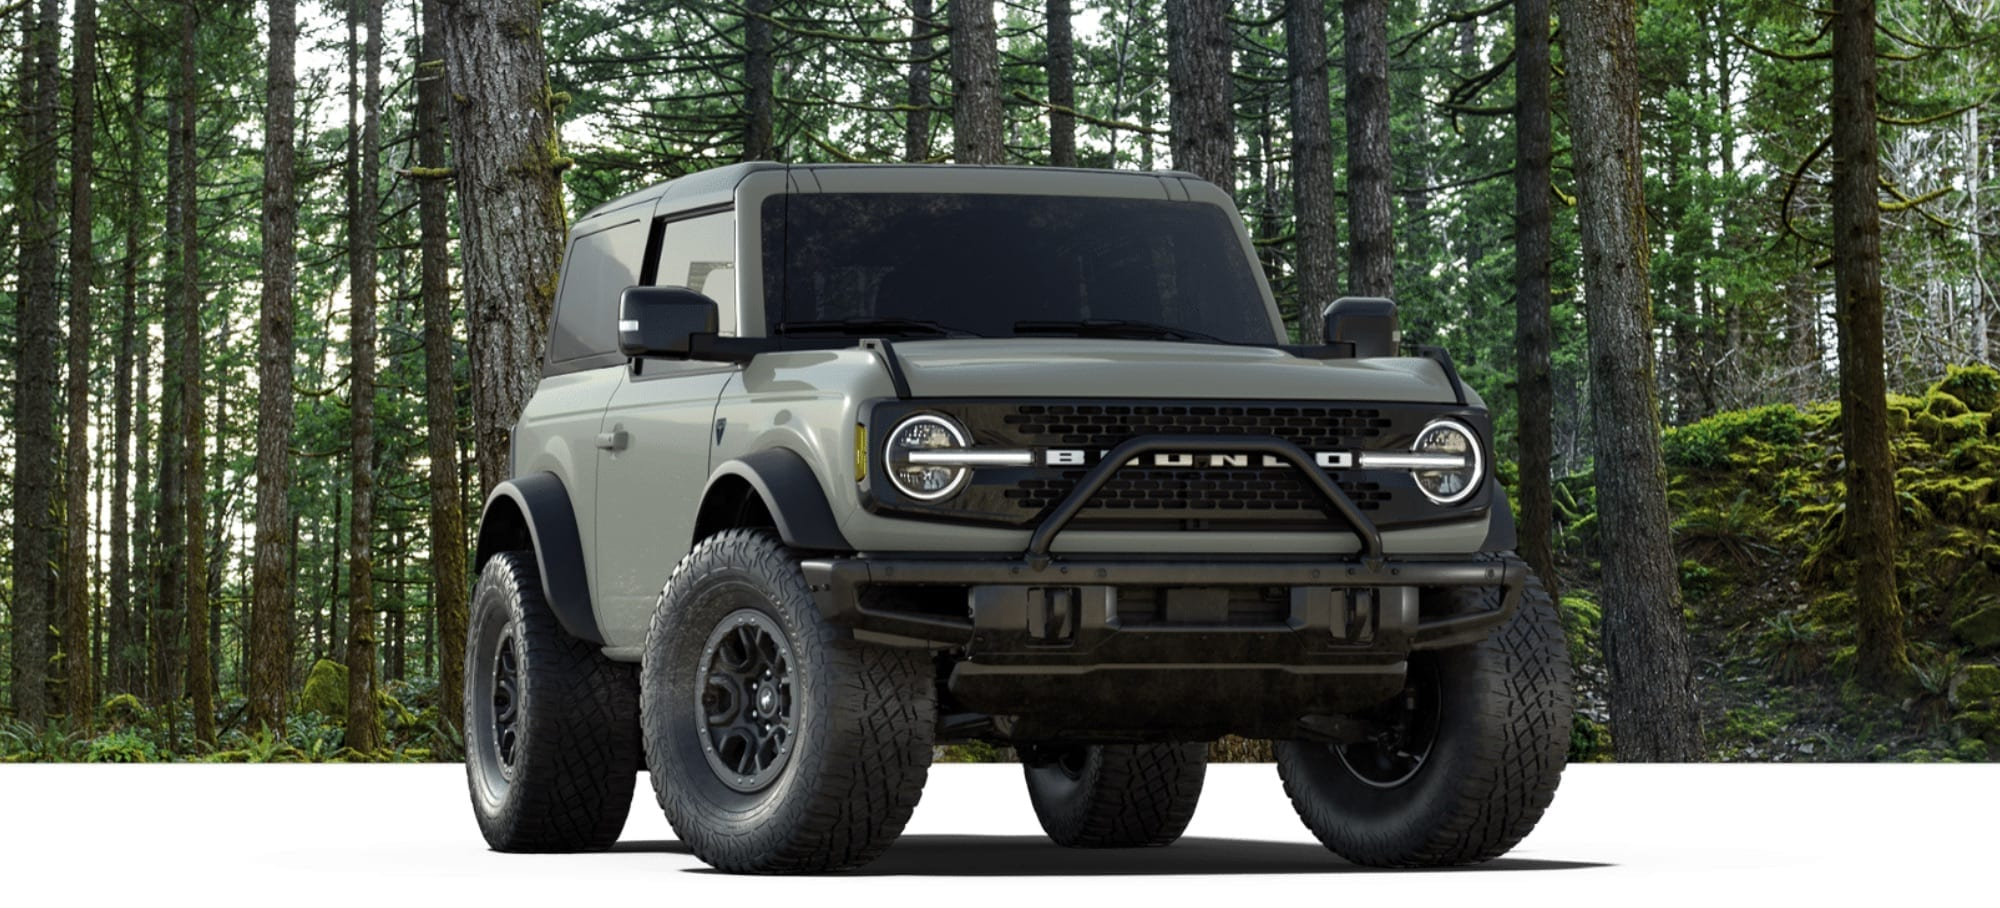 2021 Ford Bronco Final Edition